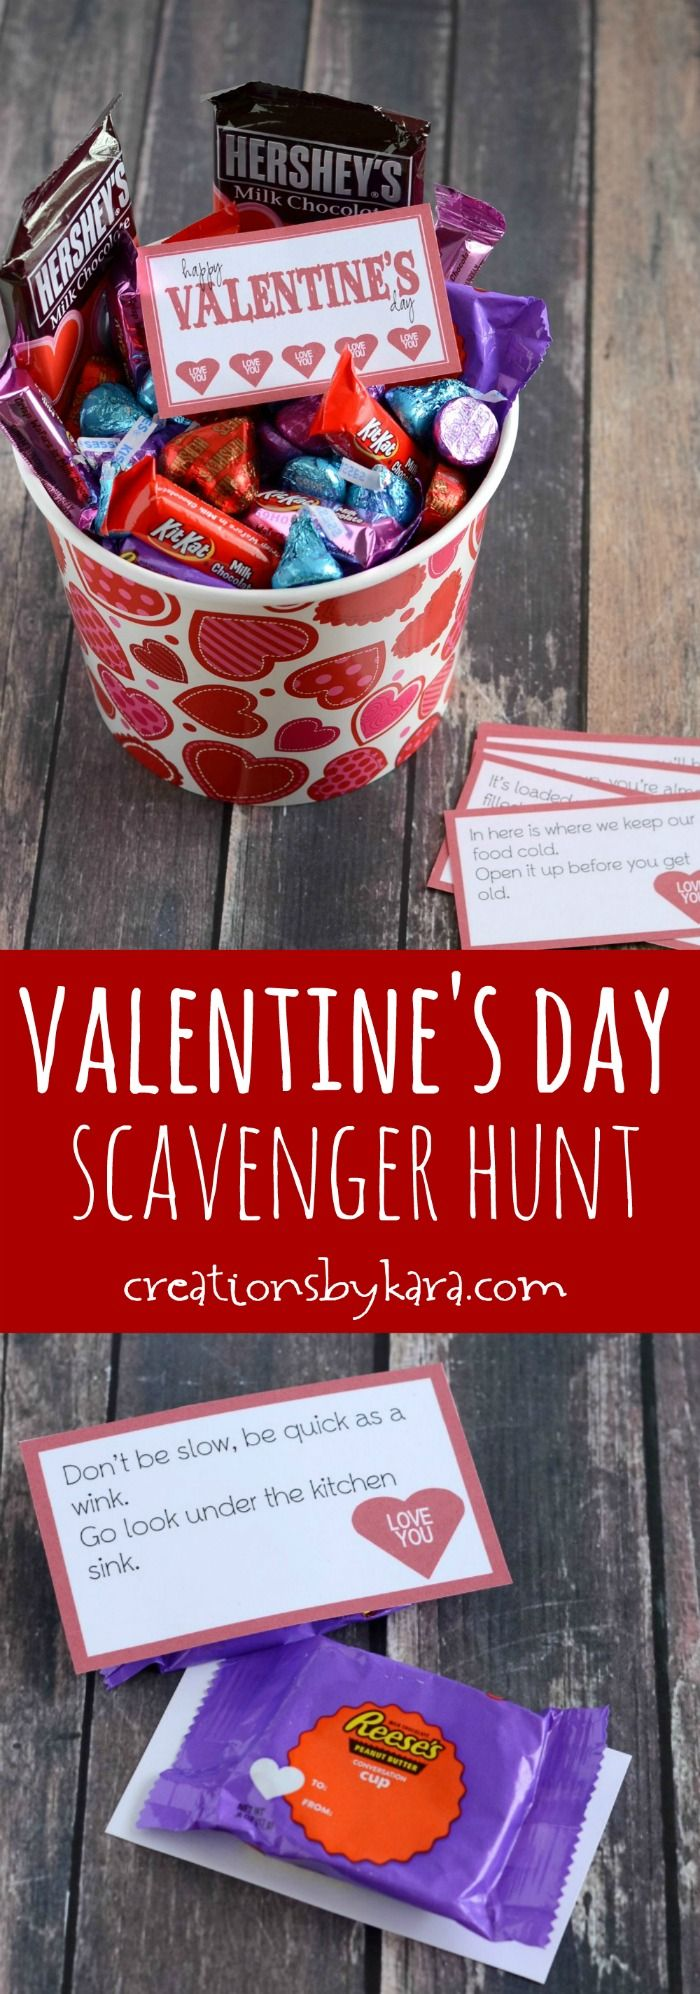 Use these FREE printable clues to make a fun Valentines Day scavenger hunt for your kids! Fun Valentine's Day activity.